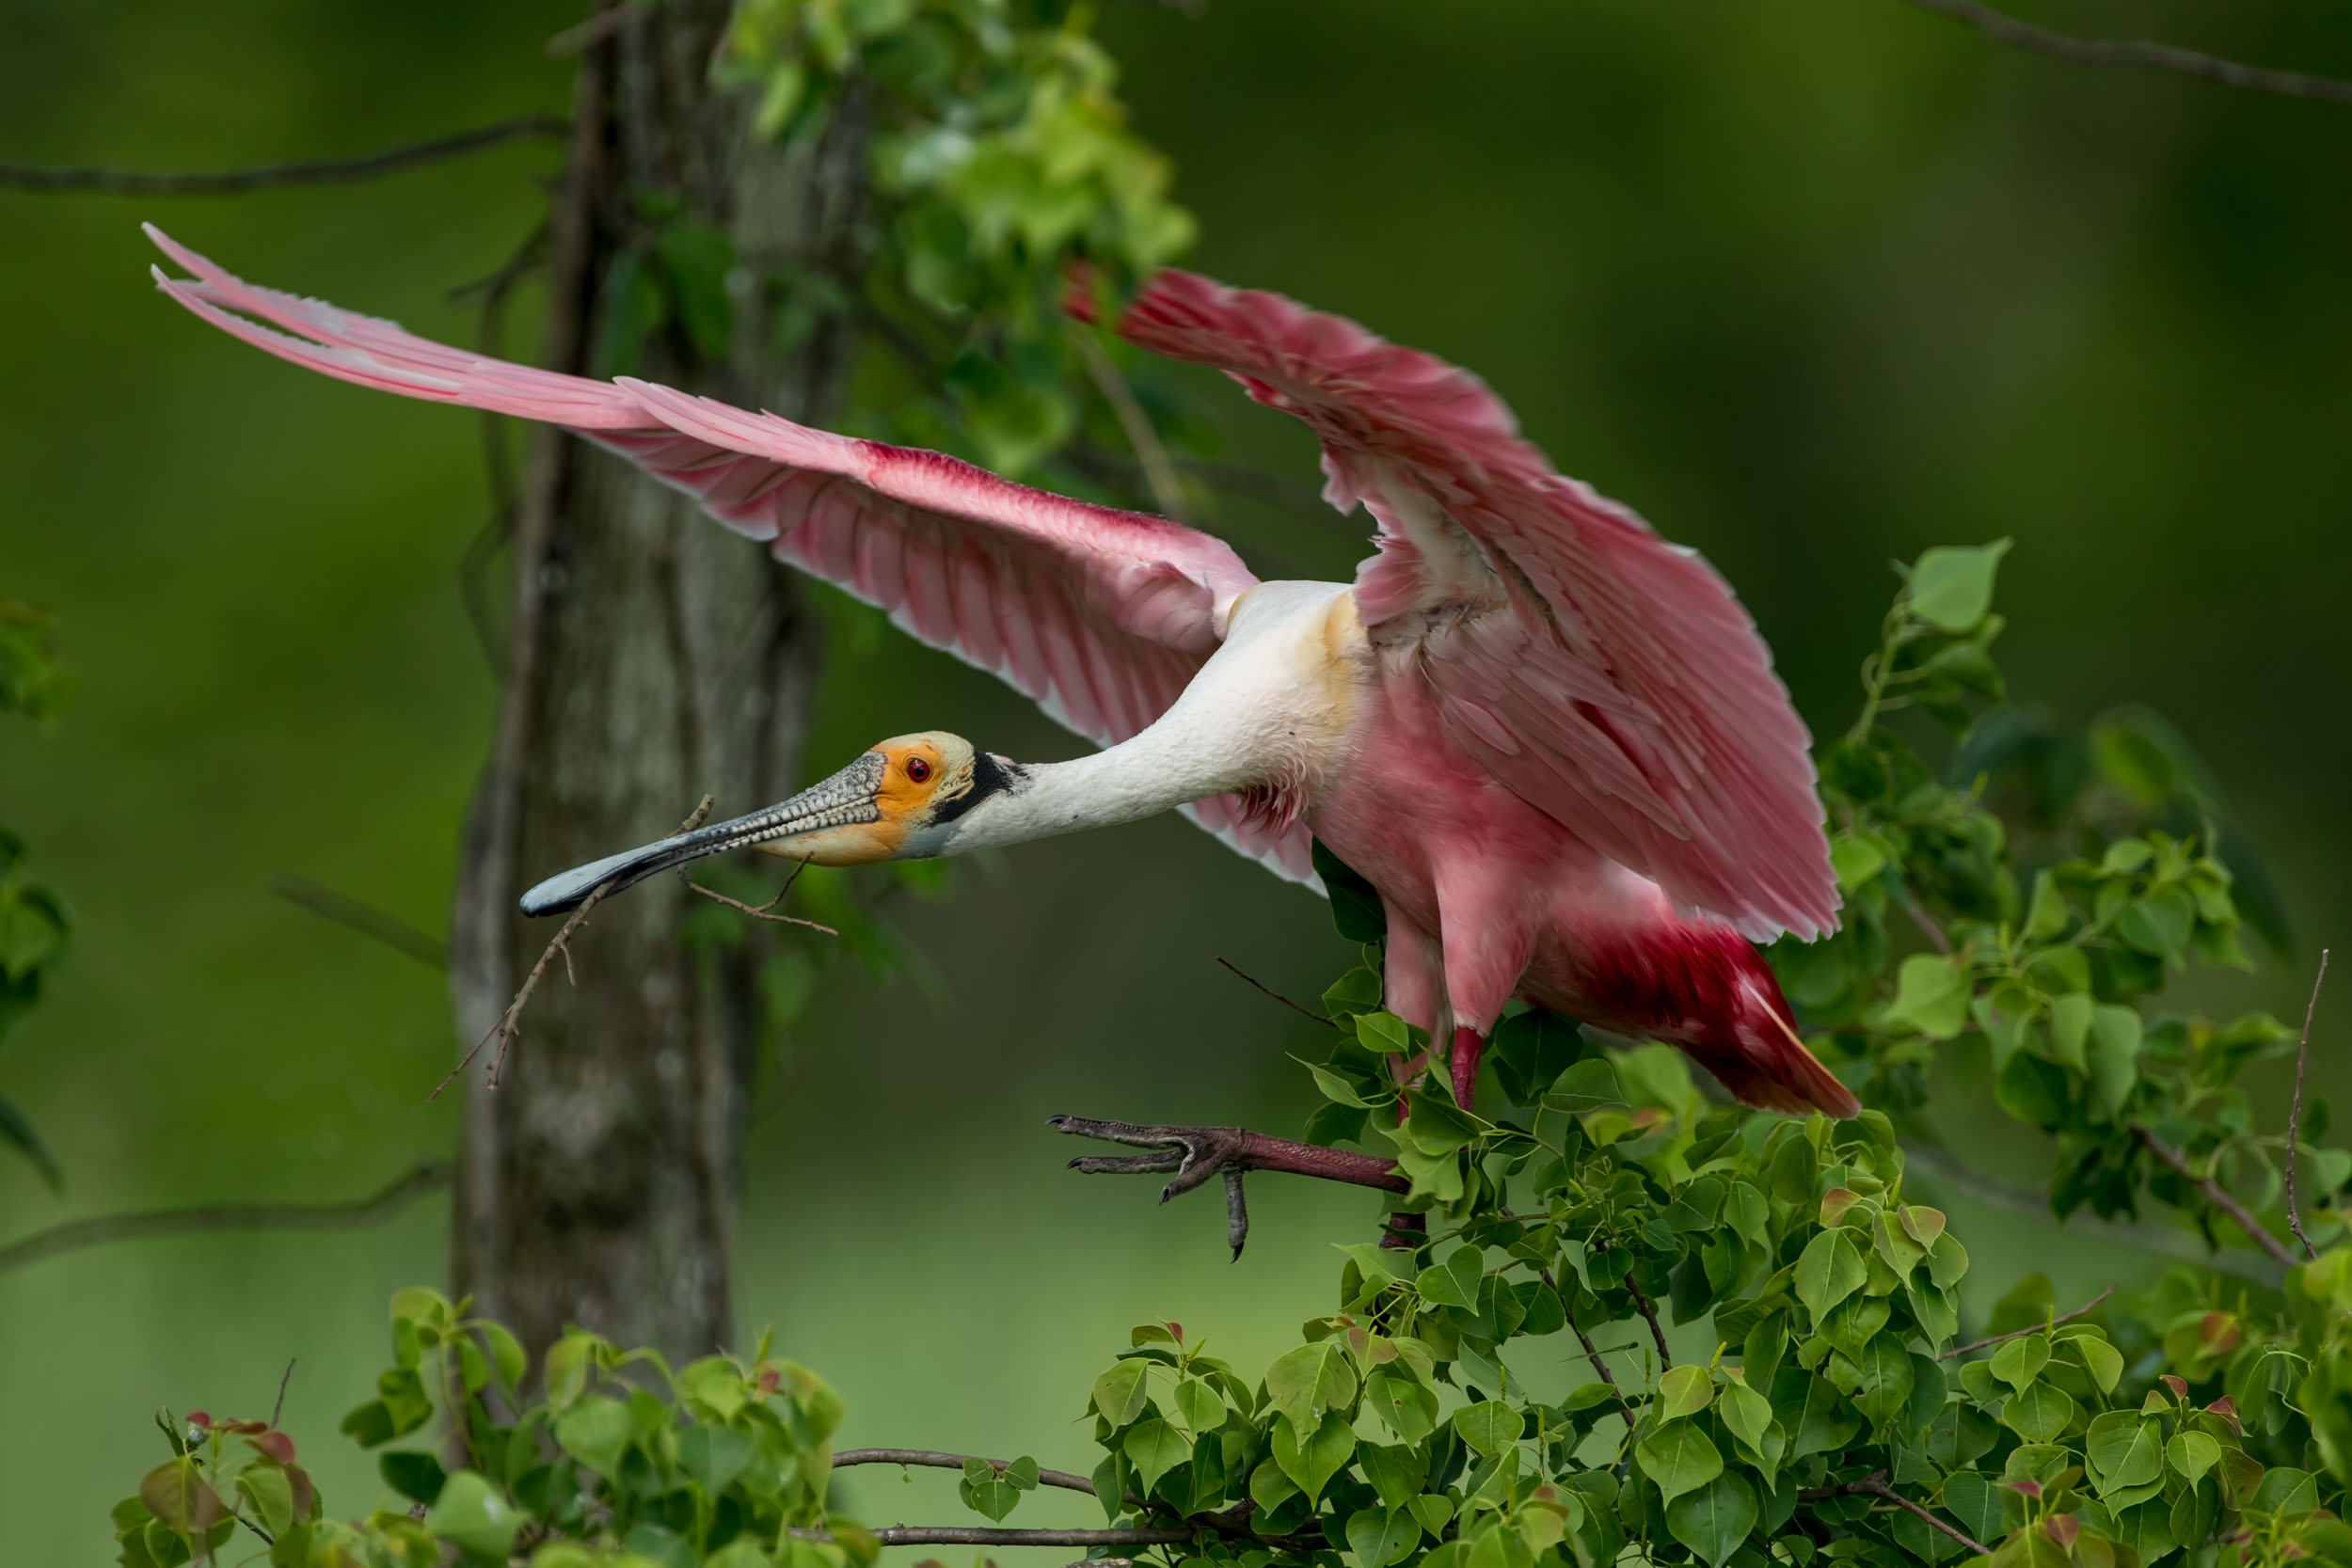 Roseate Spoonbill With Stick for the Nest